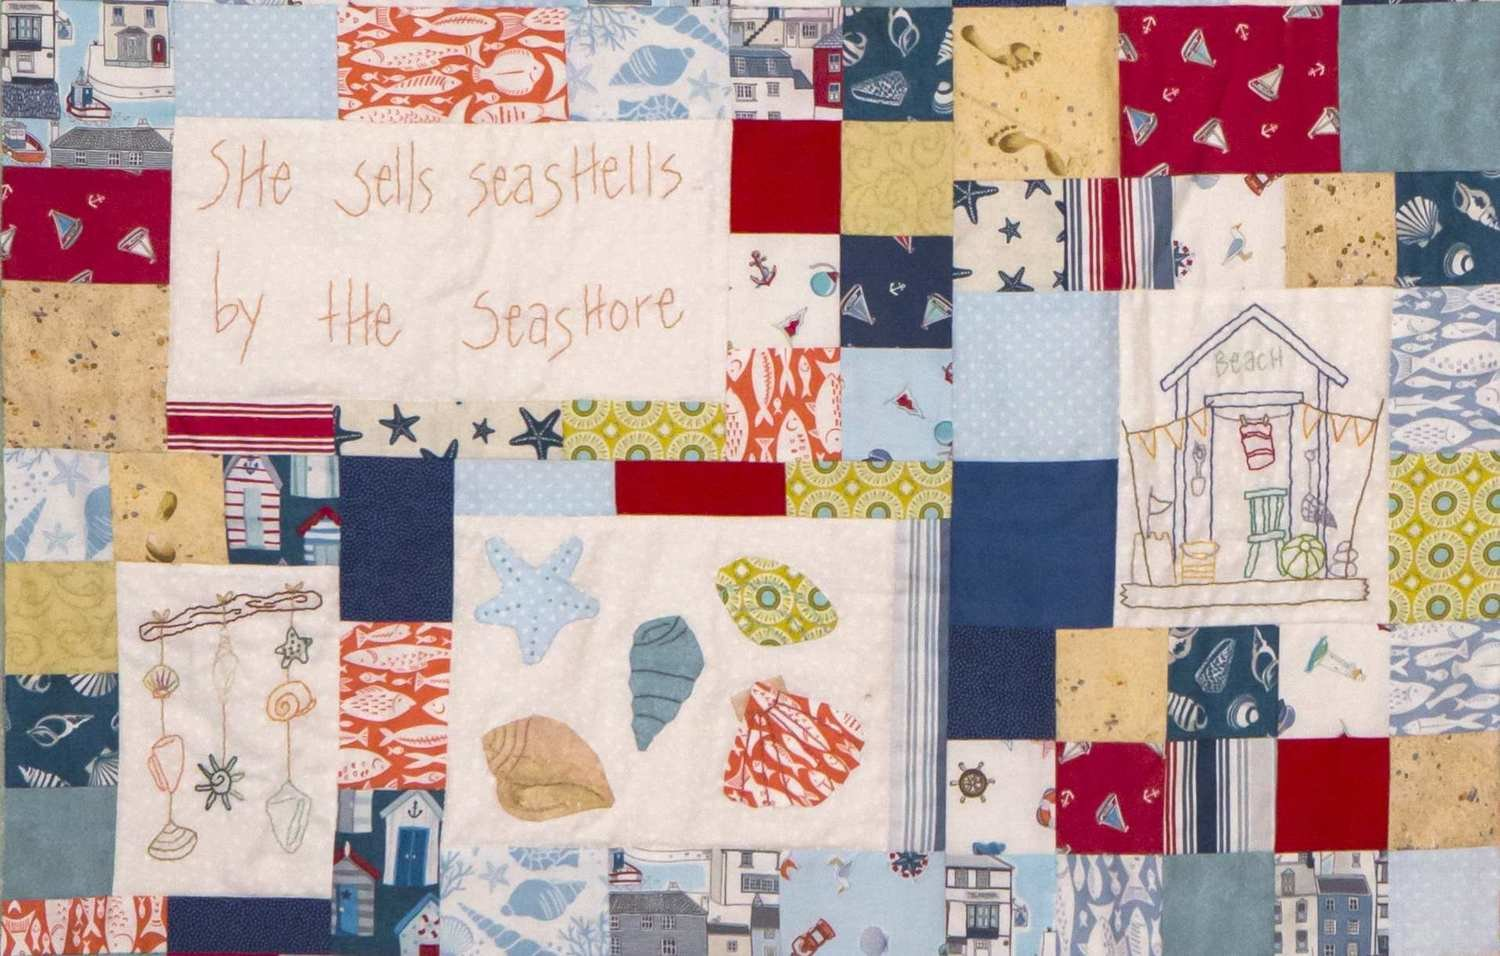 6mth BOM quilt - Down by the seaside - Month 3 Collecting Seashells PDF pattern